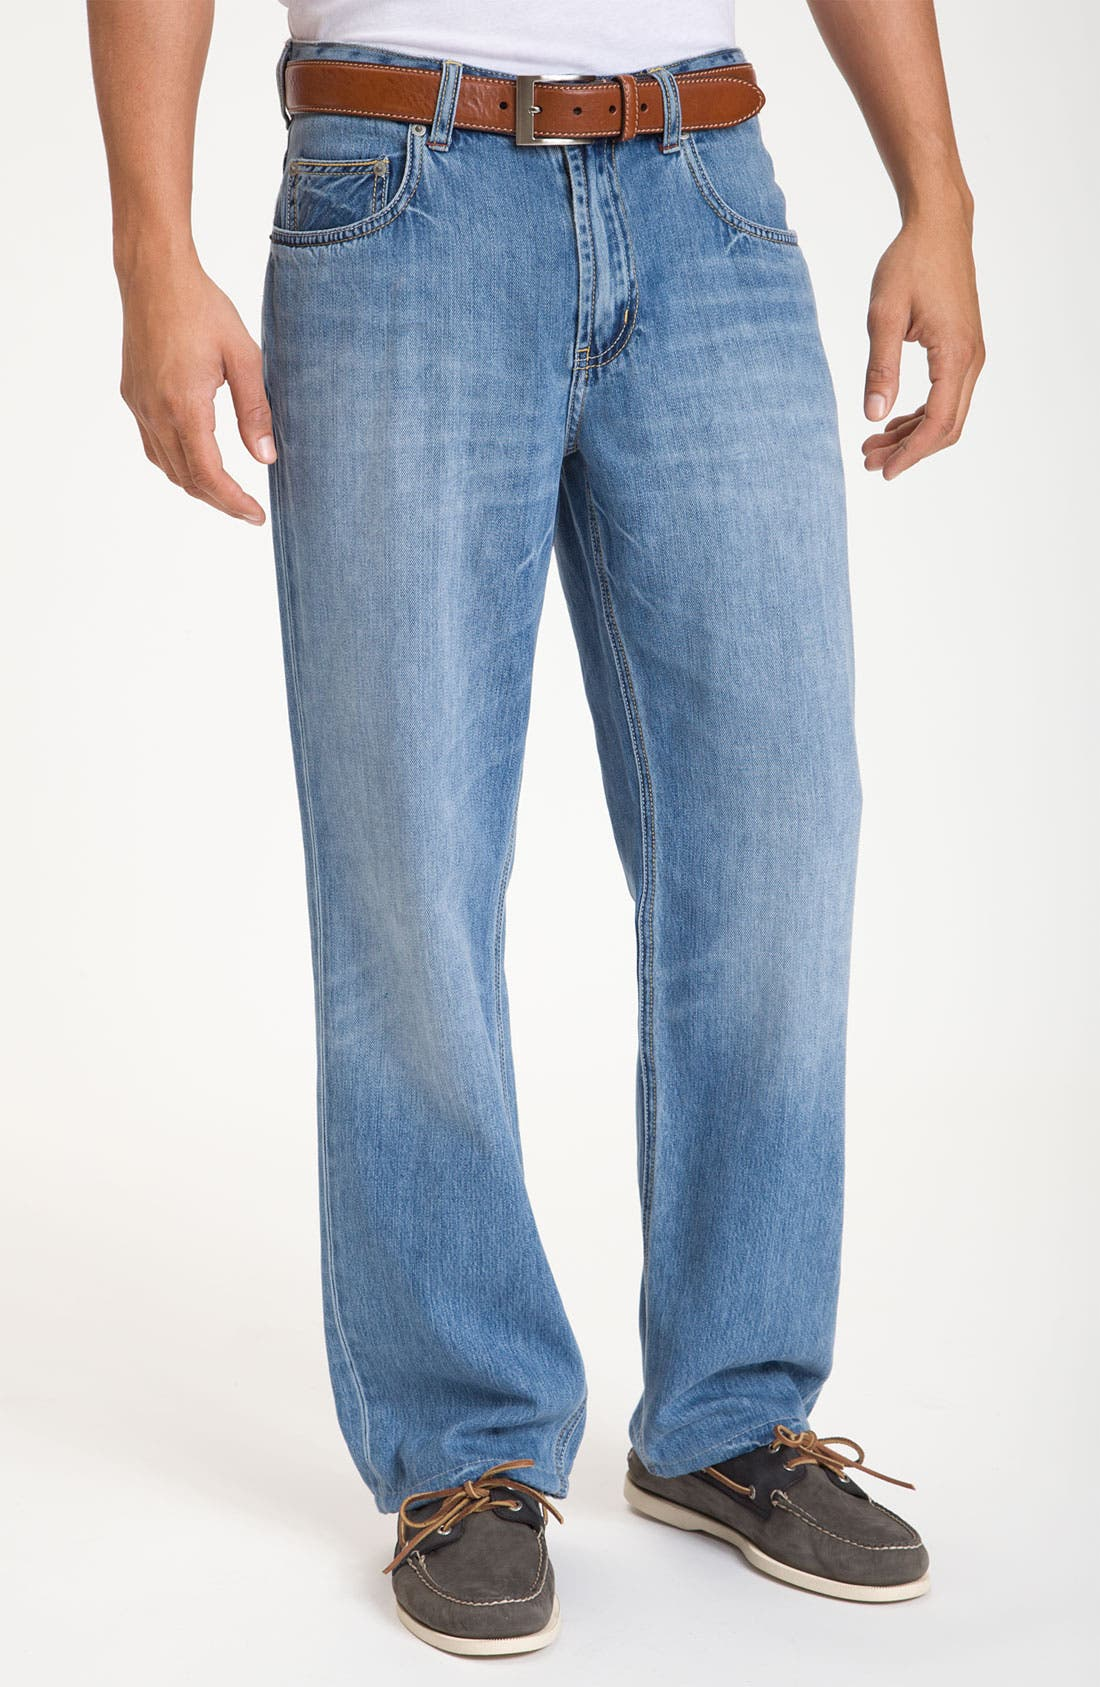 Main Image - Tommy Bahama Denim 'Island Ease' Straight Leg Jeans (Vintage Light)